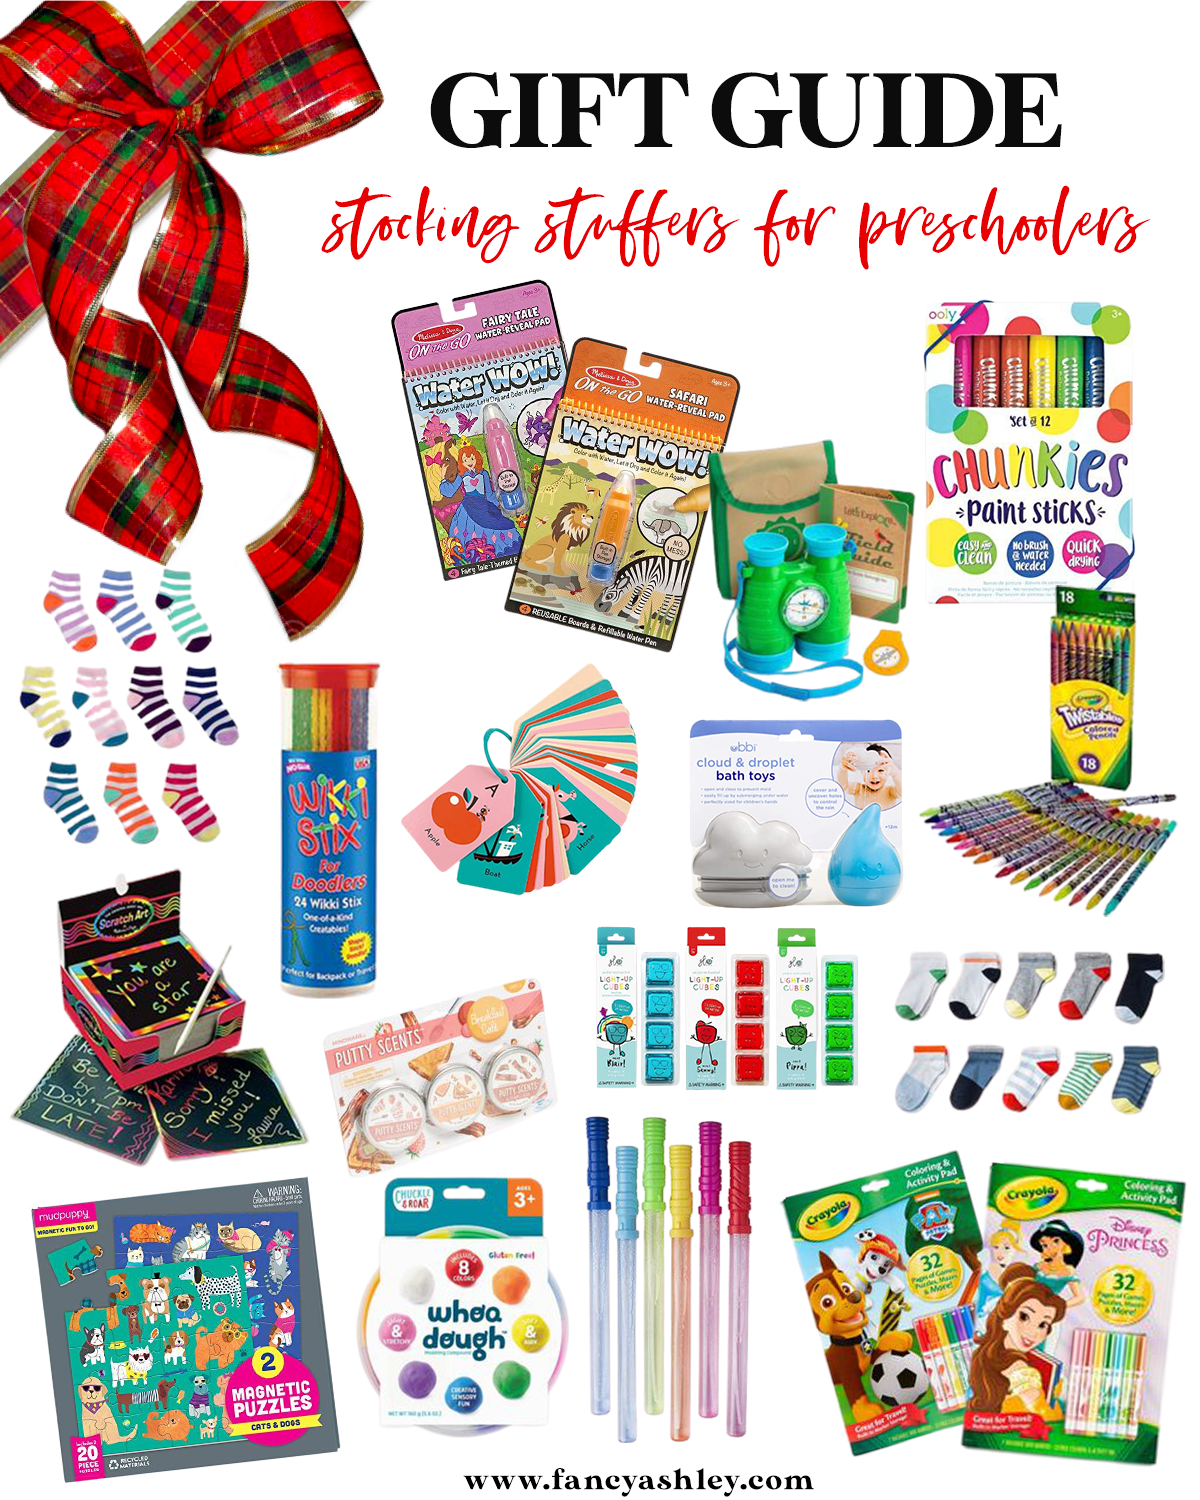 Stocking Stuffer Ideas by popular Houston lifestyle blog, Fancy Ashley: collage image of water wow fairy village, water wow safari, Binoculars and Compass play set, chunkies paint sticks, Girls socks, Wikki Stix, ABC flash cards, raindrop and cloud bath toys, Twistables scratch art notepads, Scented putty, Light up cubes, Boys Socks, Magnetic Puzzles, Whoa Dough, Bubble wands, Paw Patrol coloring and activity pad, Disney Princess Coloring and Activity Pad.